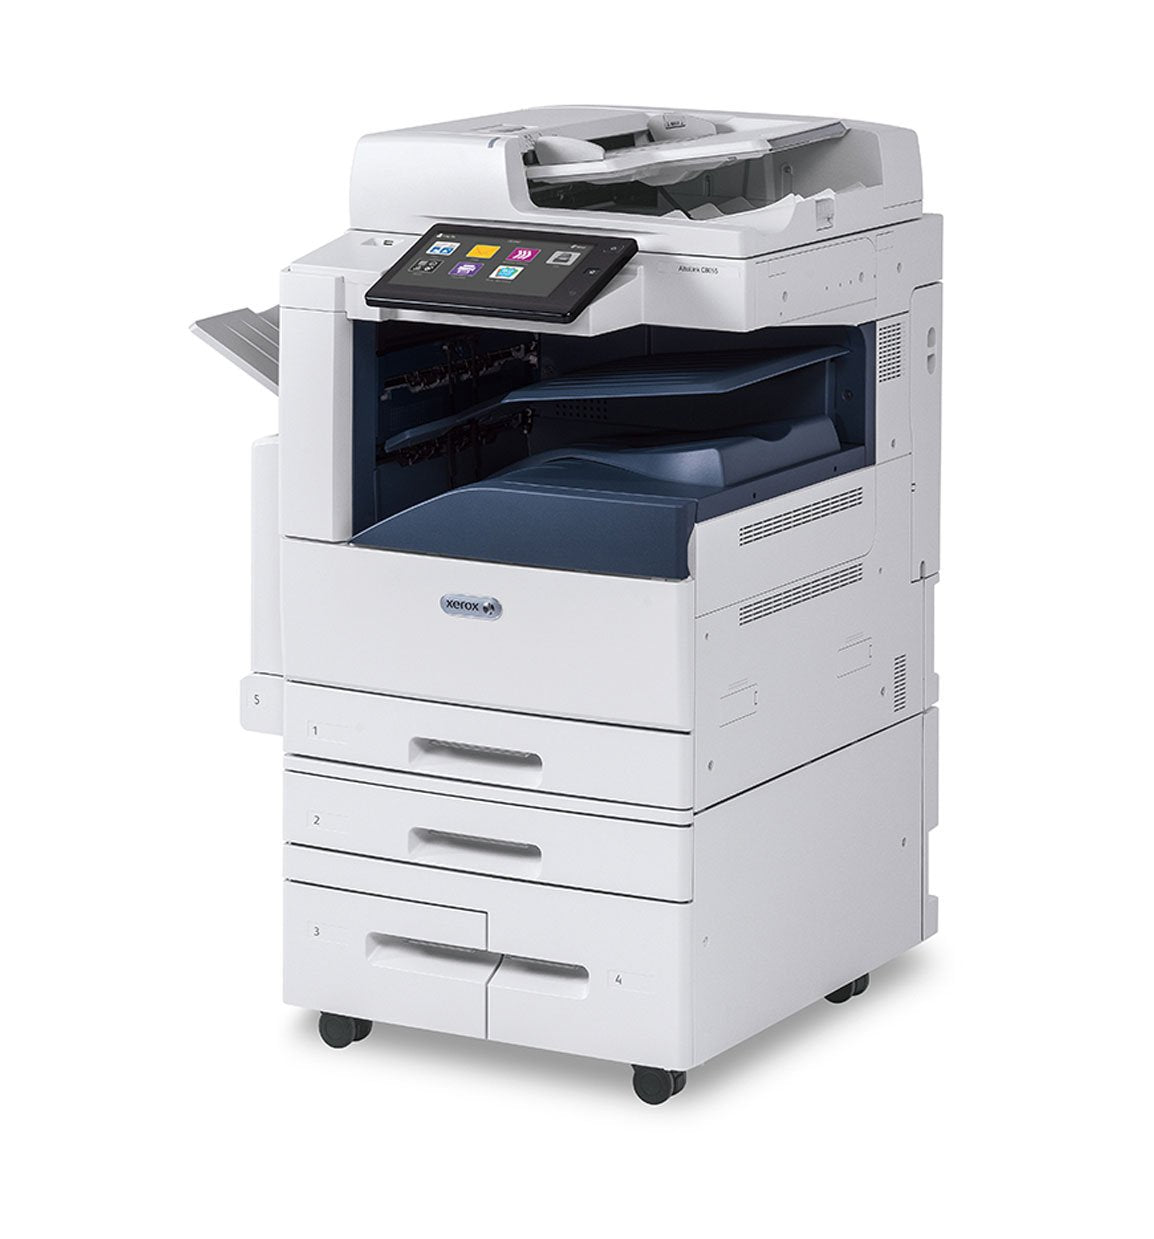 AltaLink C8000 Series - Advanced Office Solutions